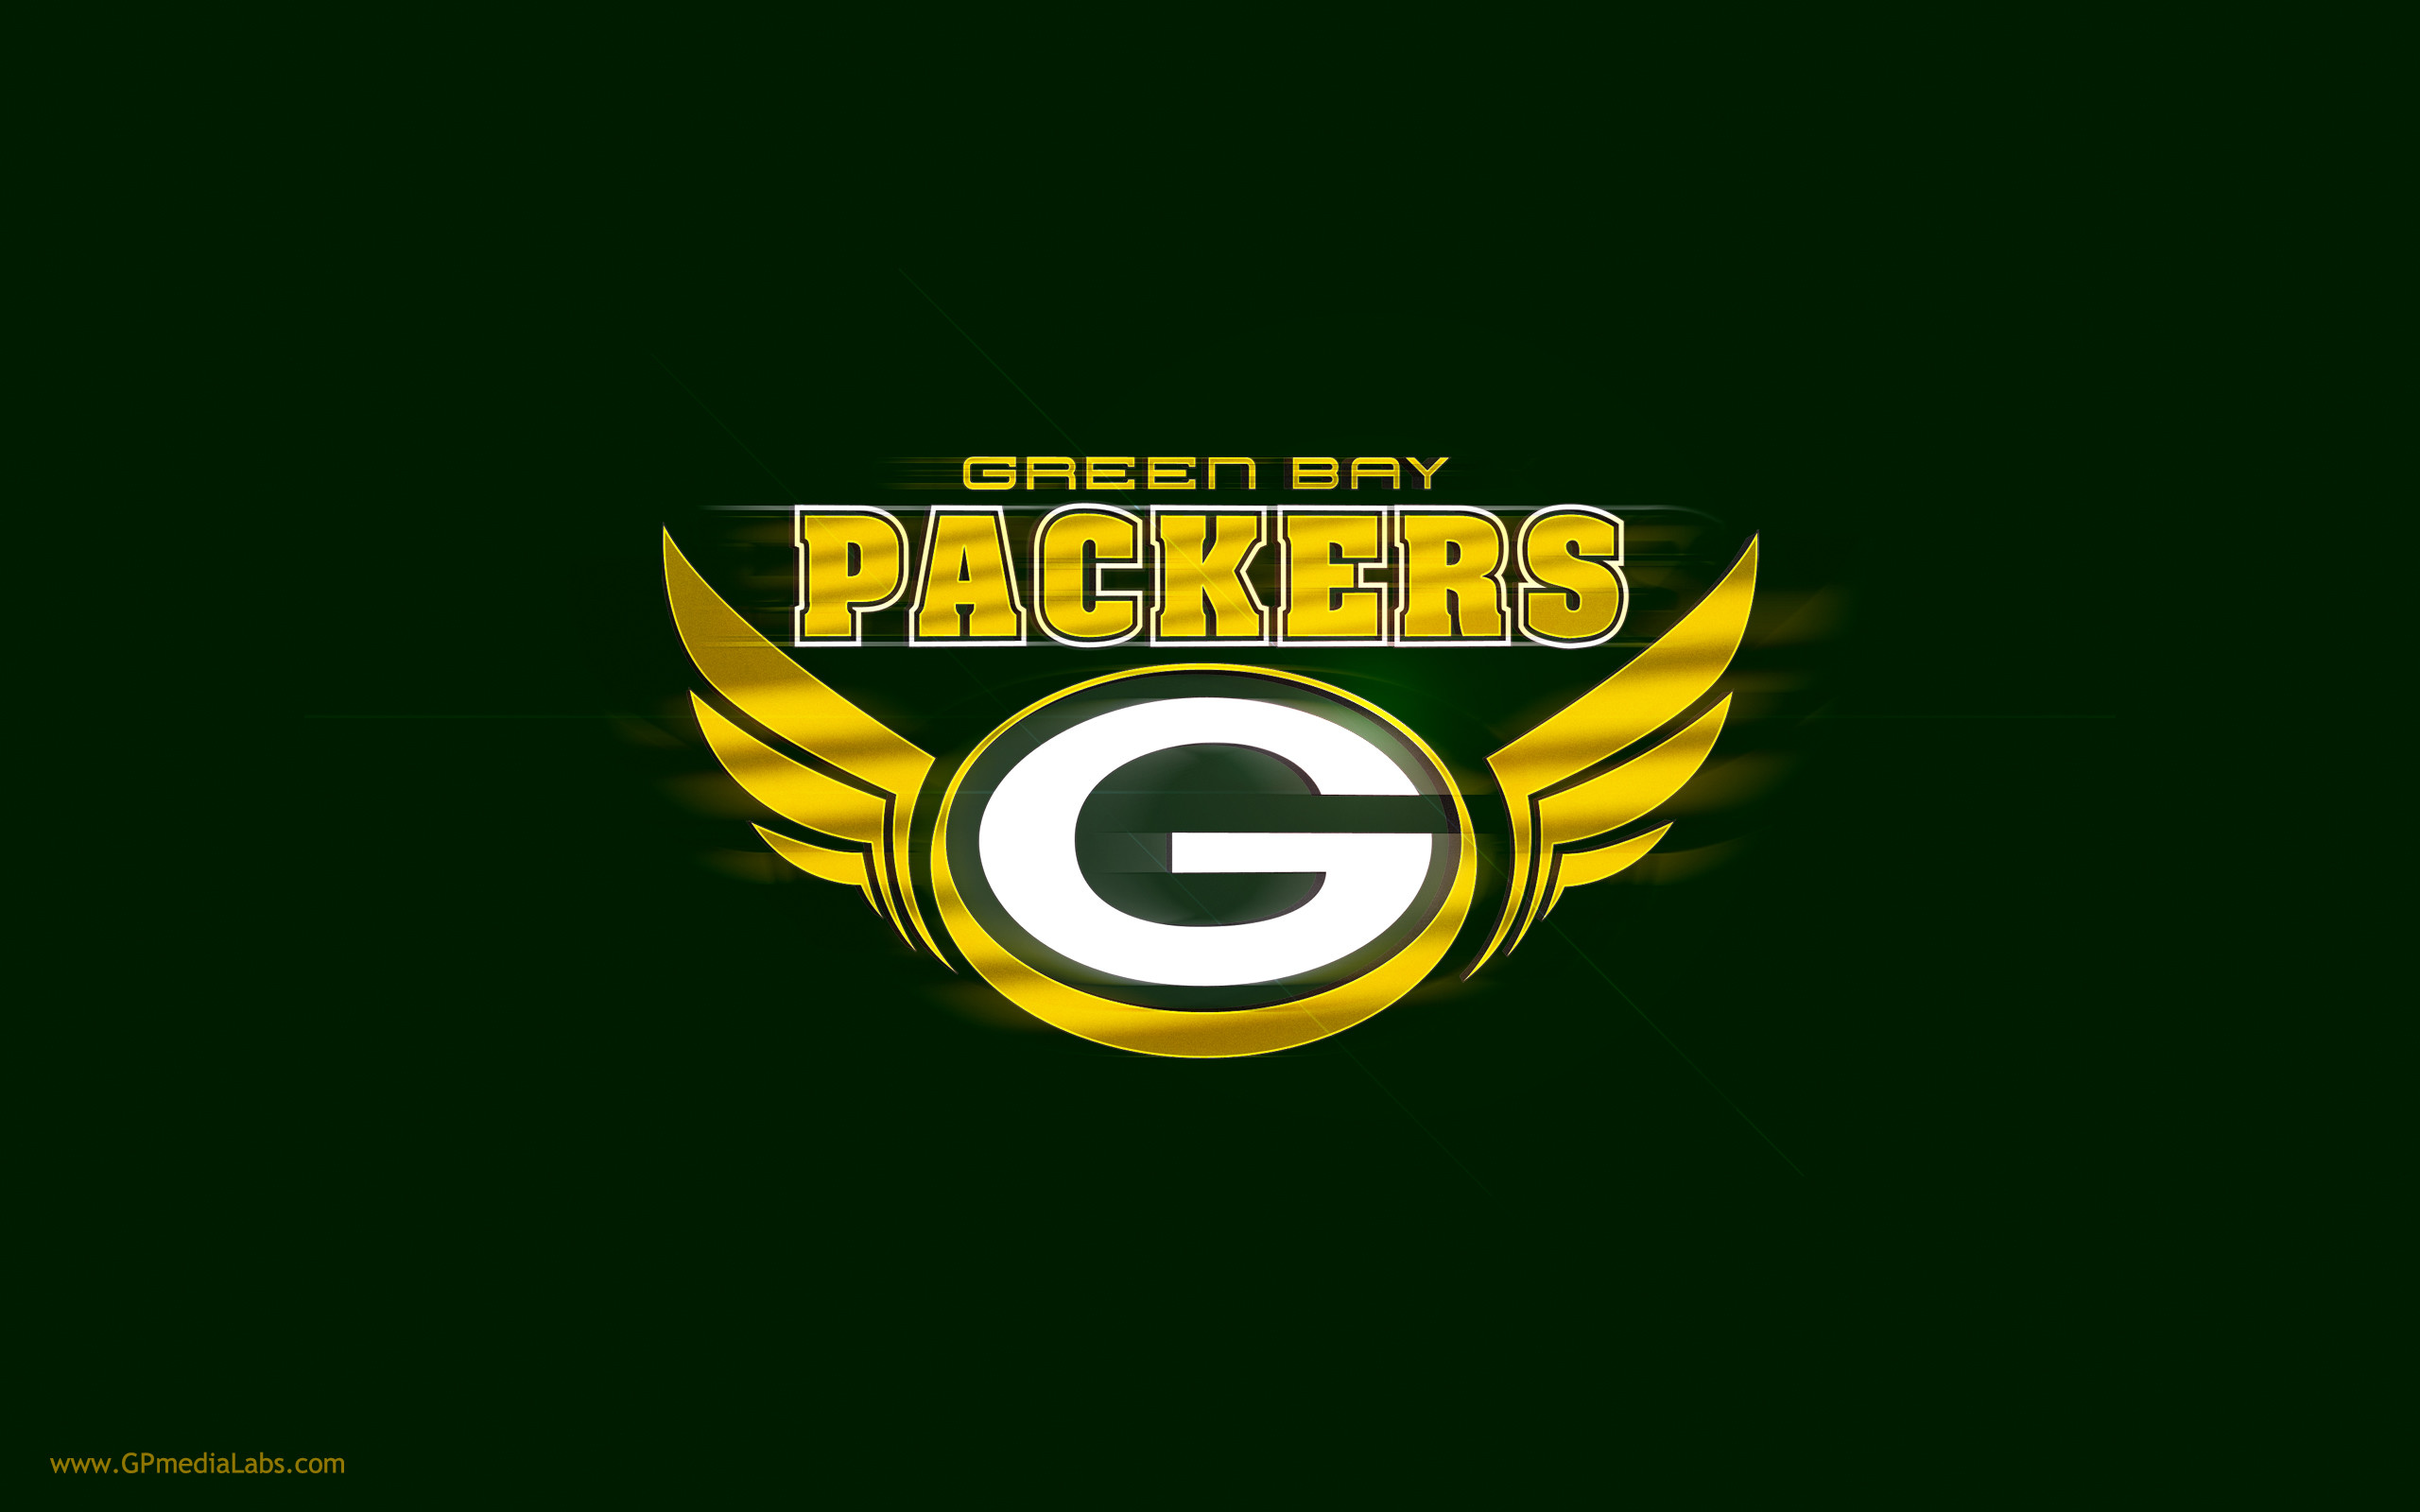 Green Bay Packers Wallpaper – G Logo with Wings